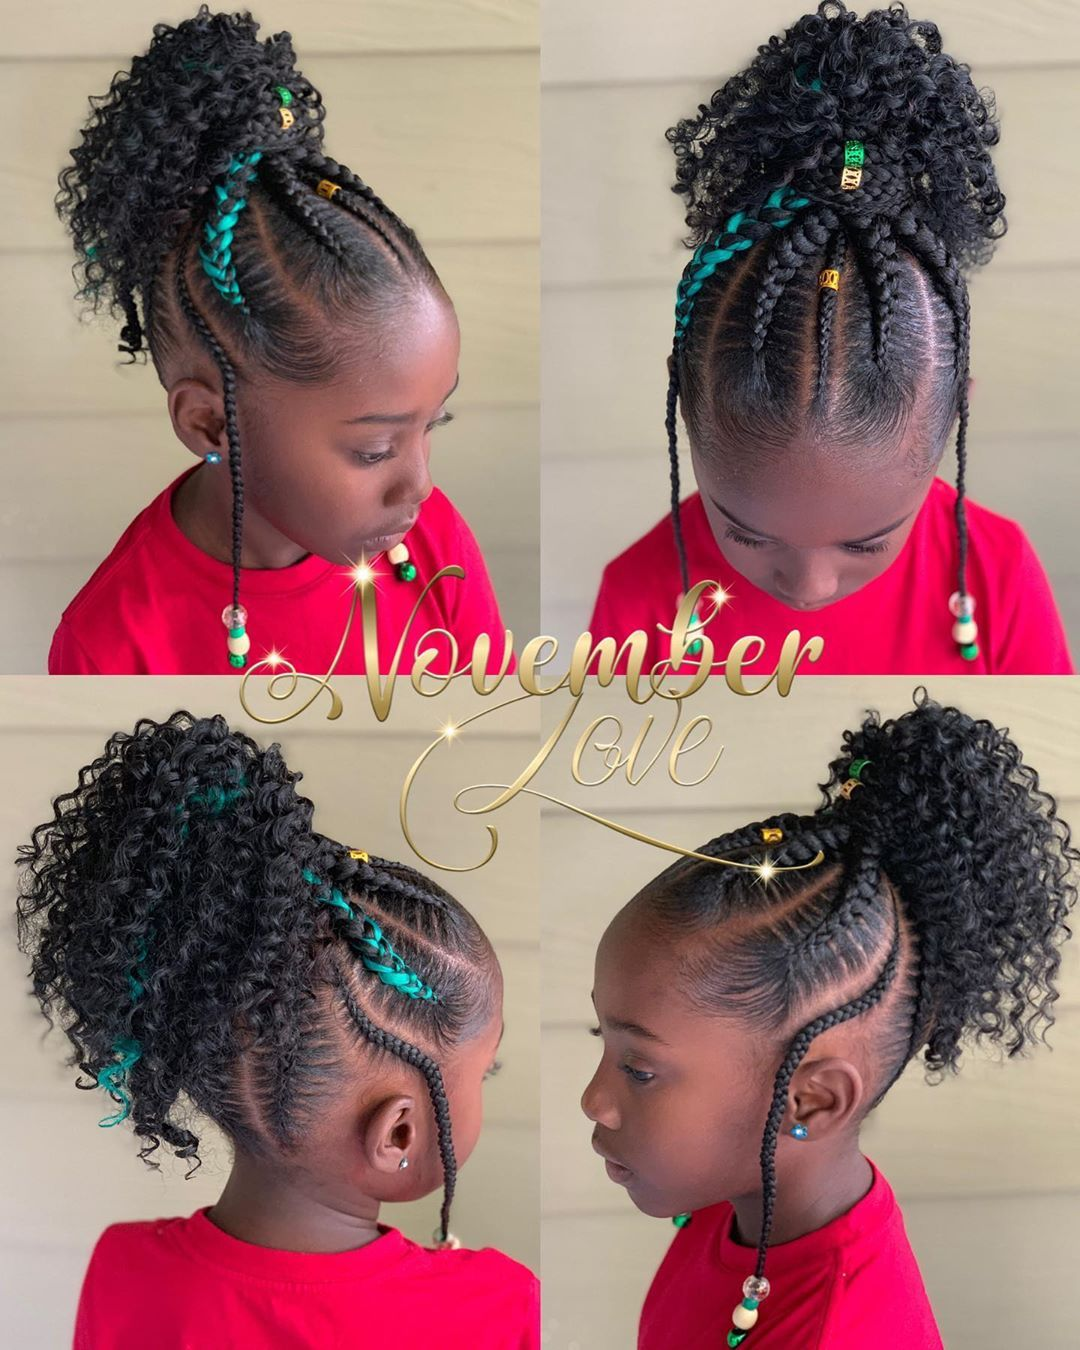 Children S Braids And Beads Booking Link In Bio Childrenhairstyles Braidart Childrensbraids Braidsandbeads Bestbraids With Images Kids Hairstyles Hair Styles